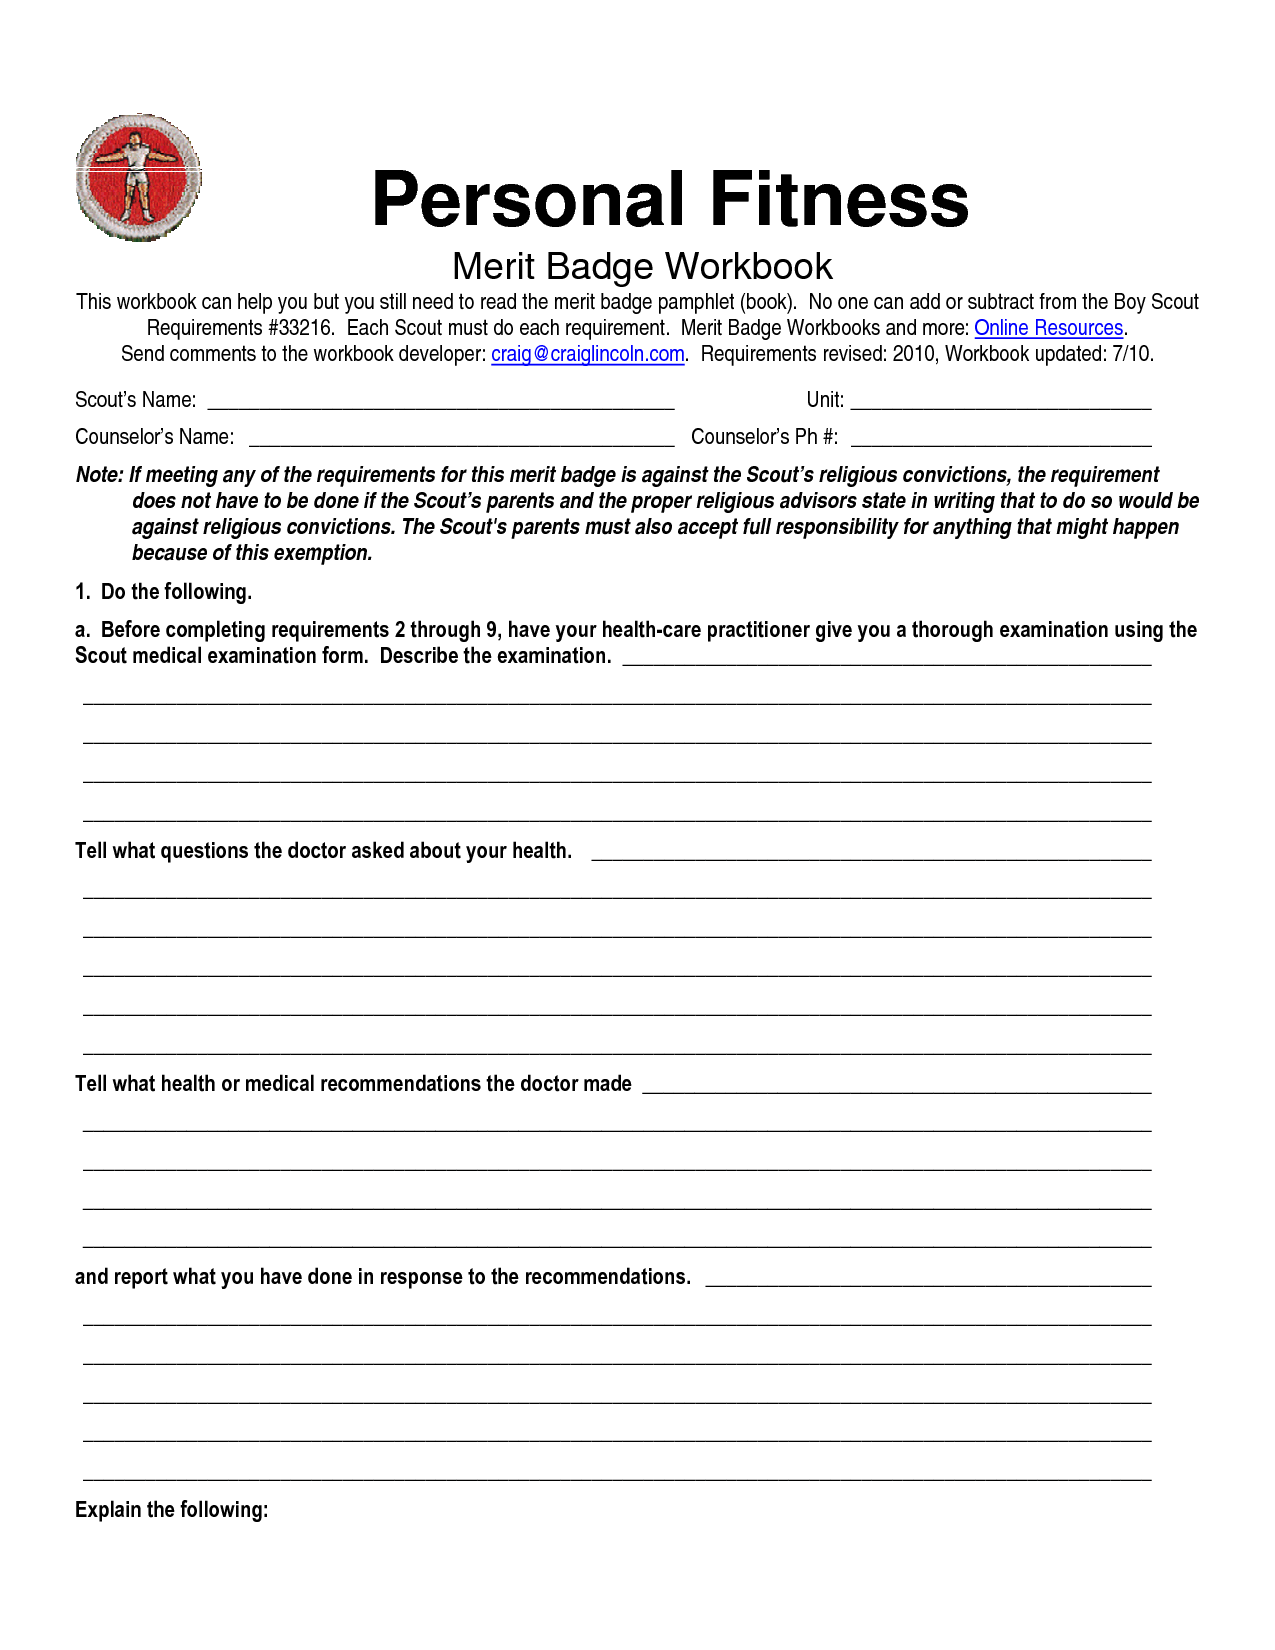 Merit Badge Worksheet Family Life Answers